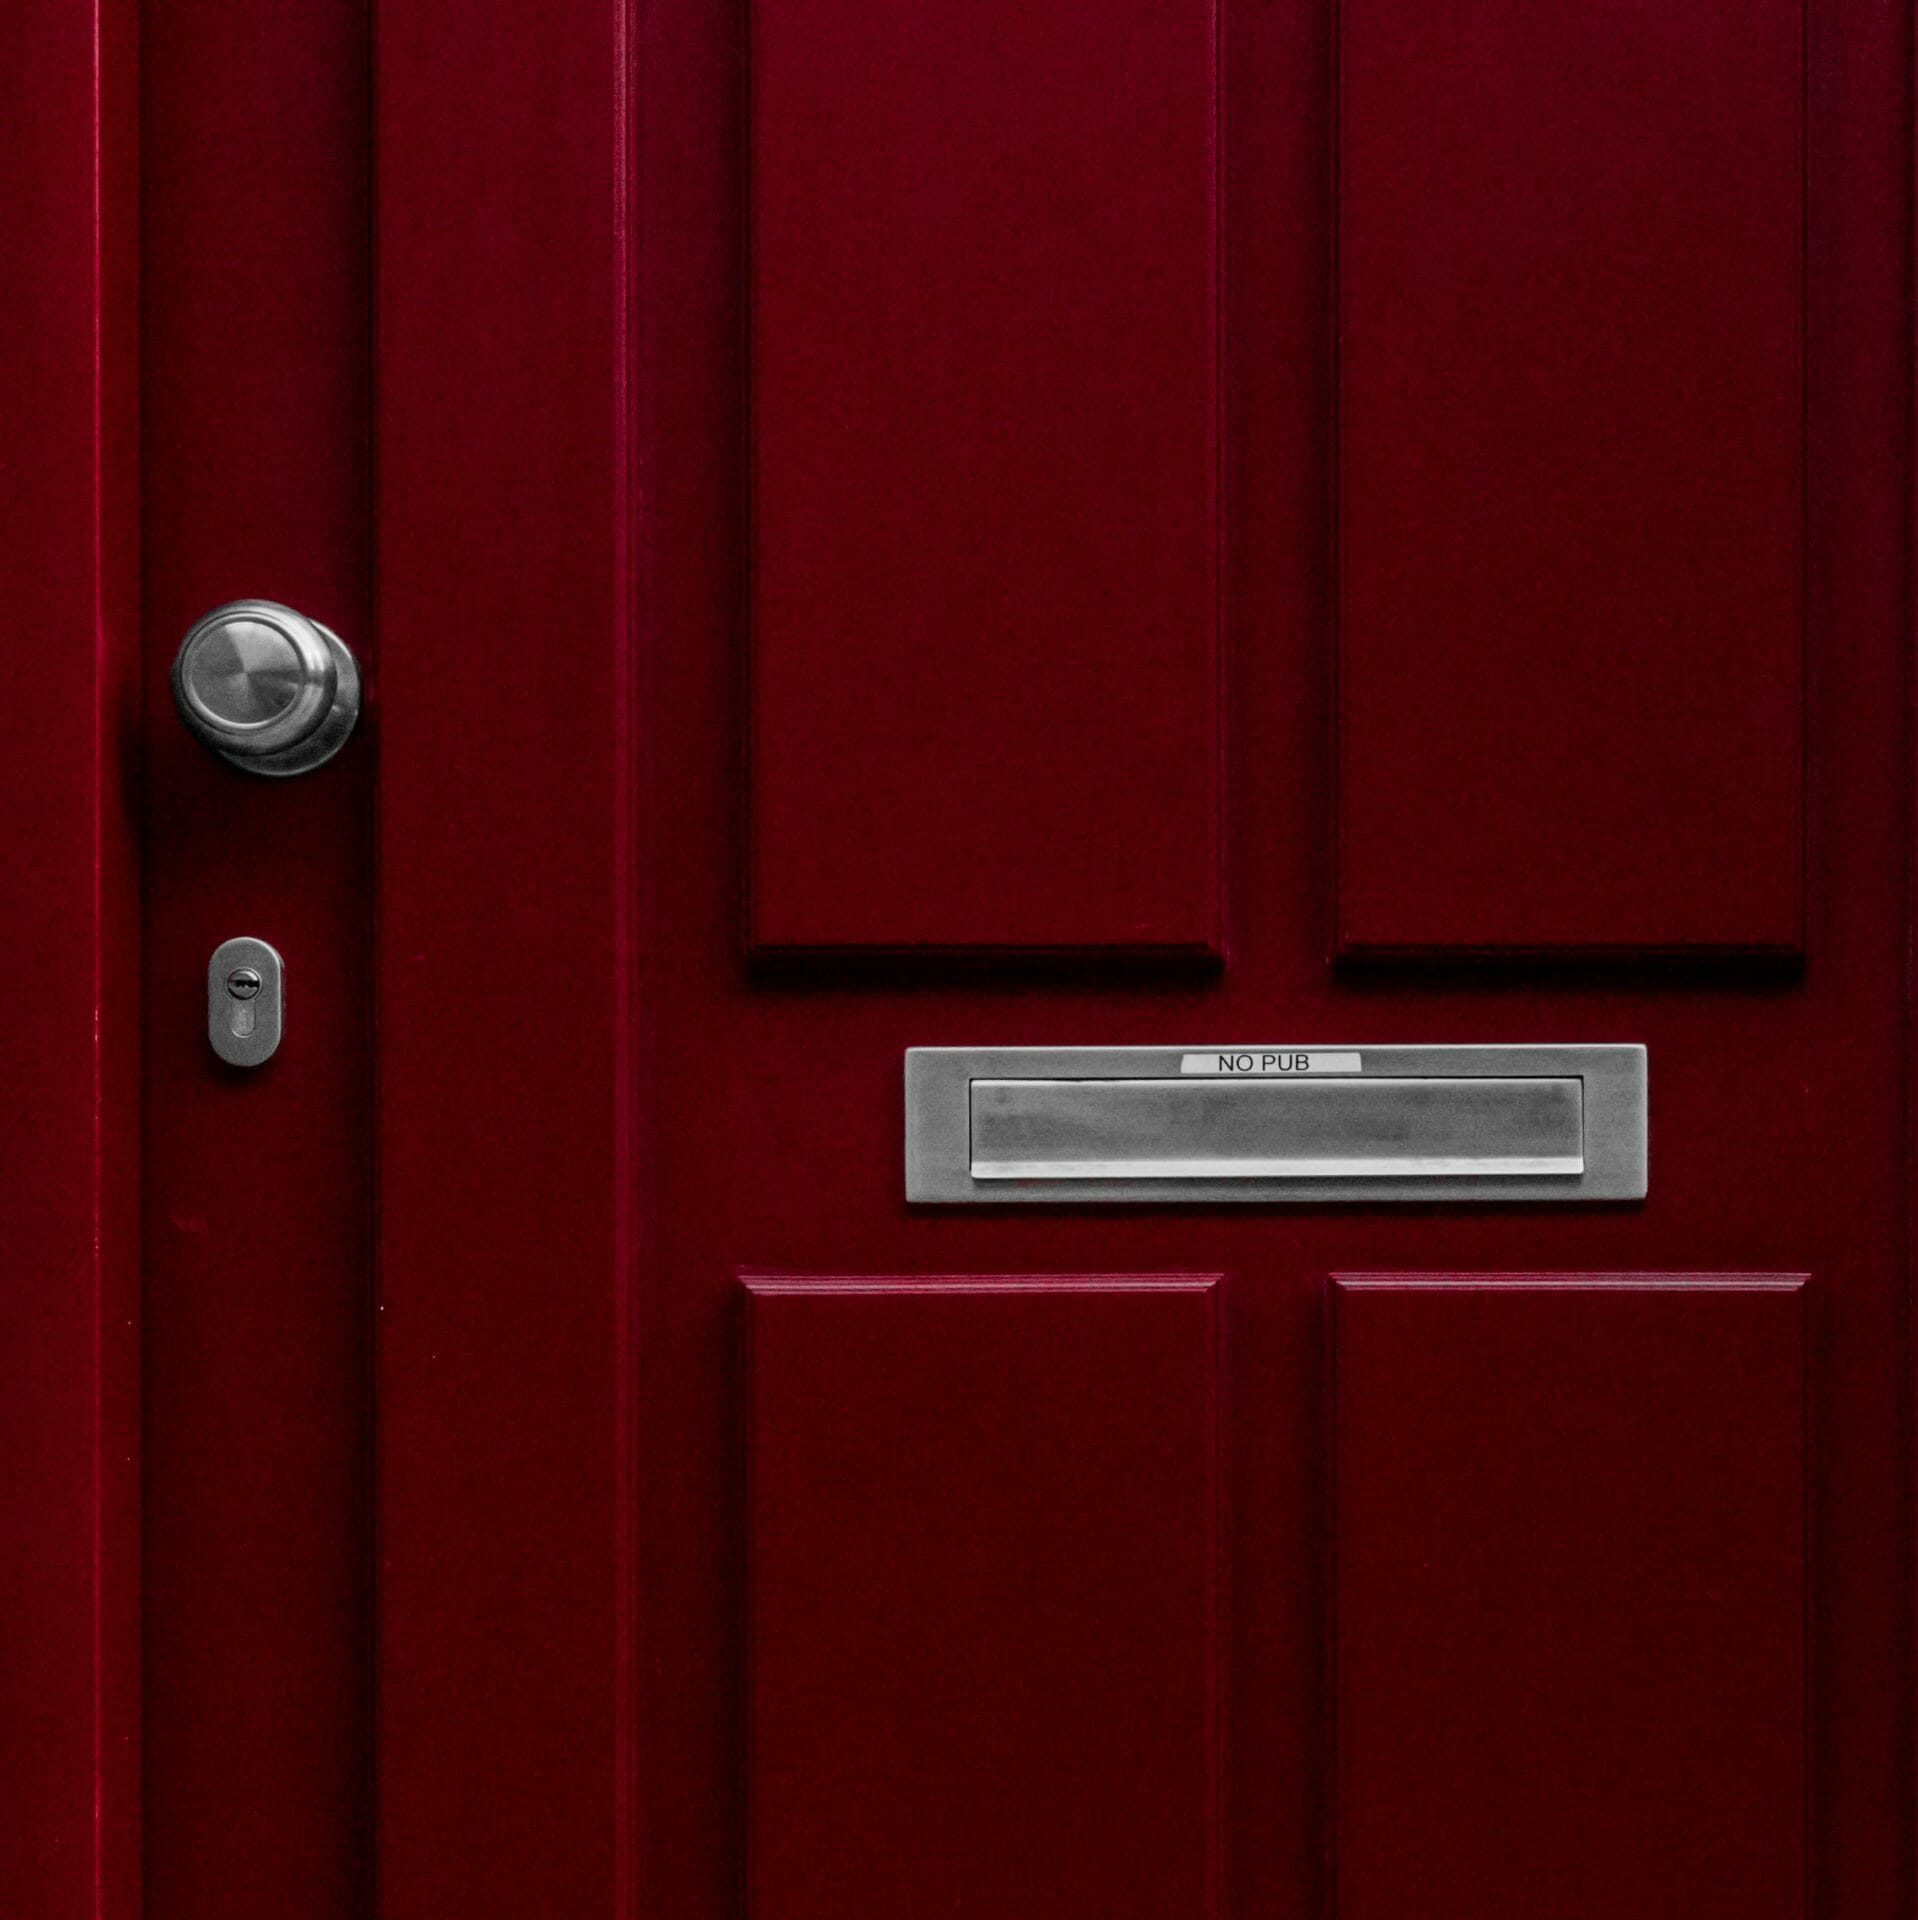 Picture of red door with letterbox for Real Wealth Show Podcast Episode #681